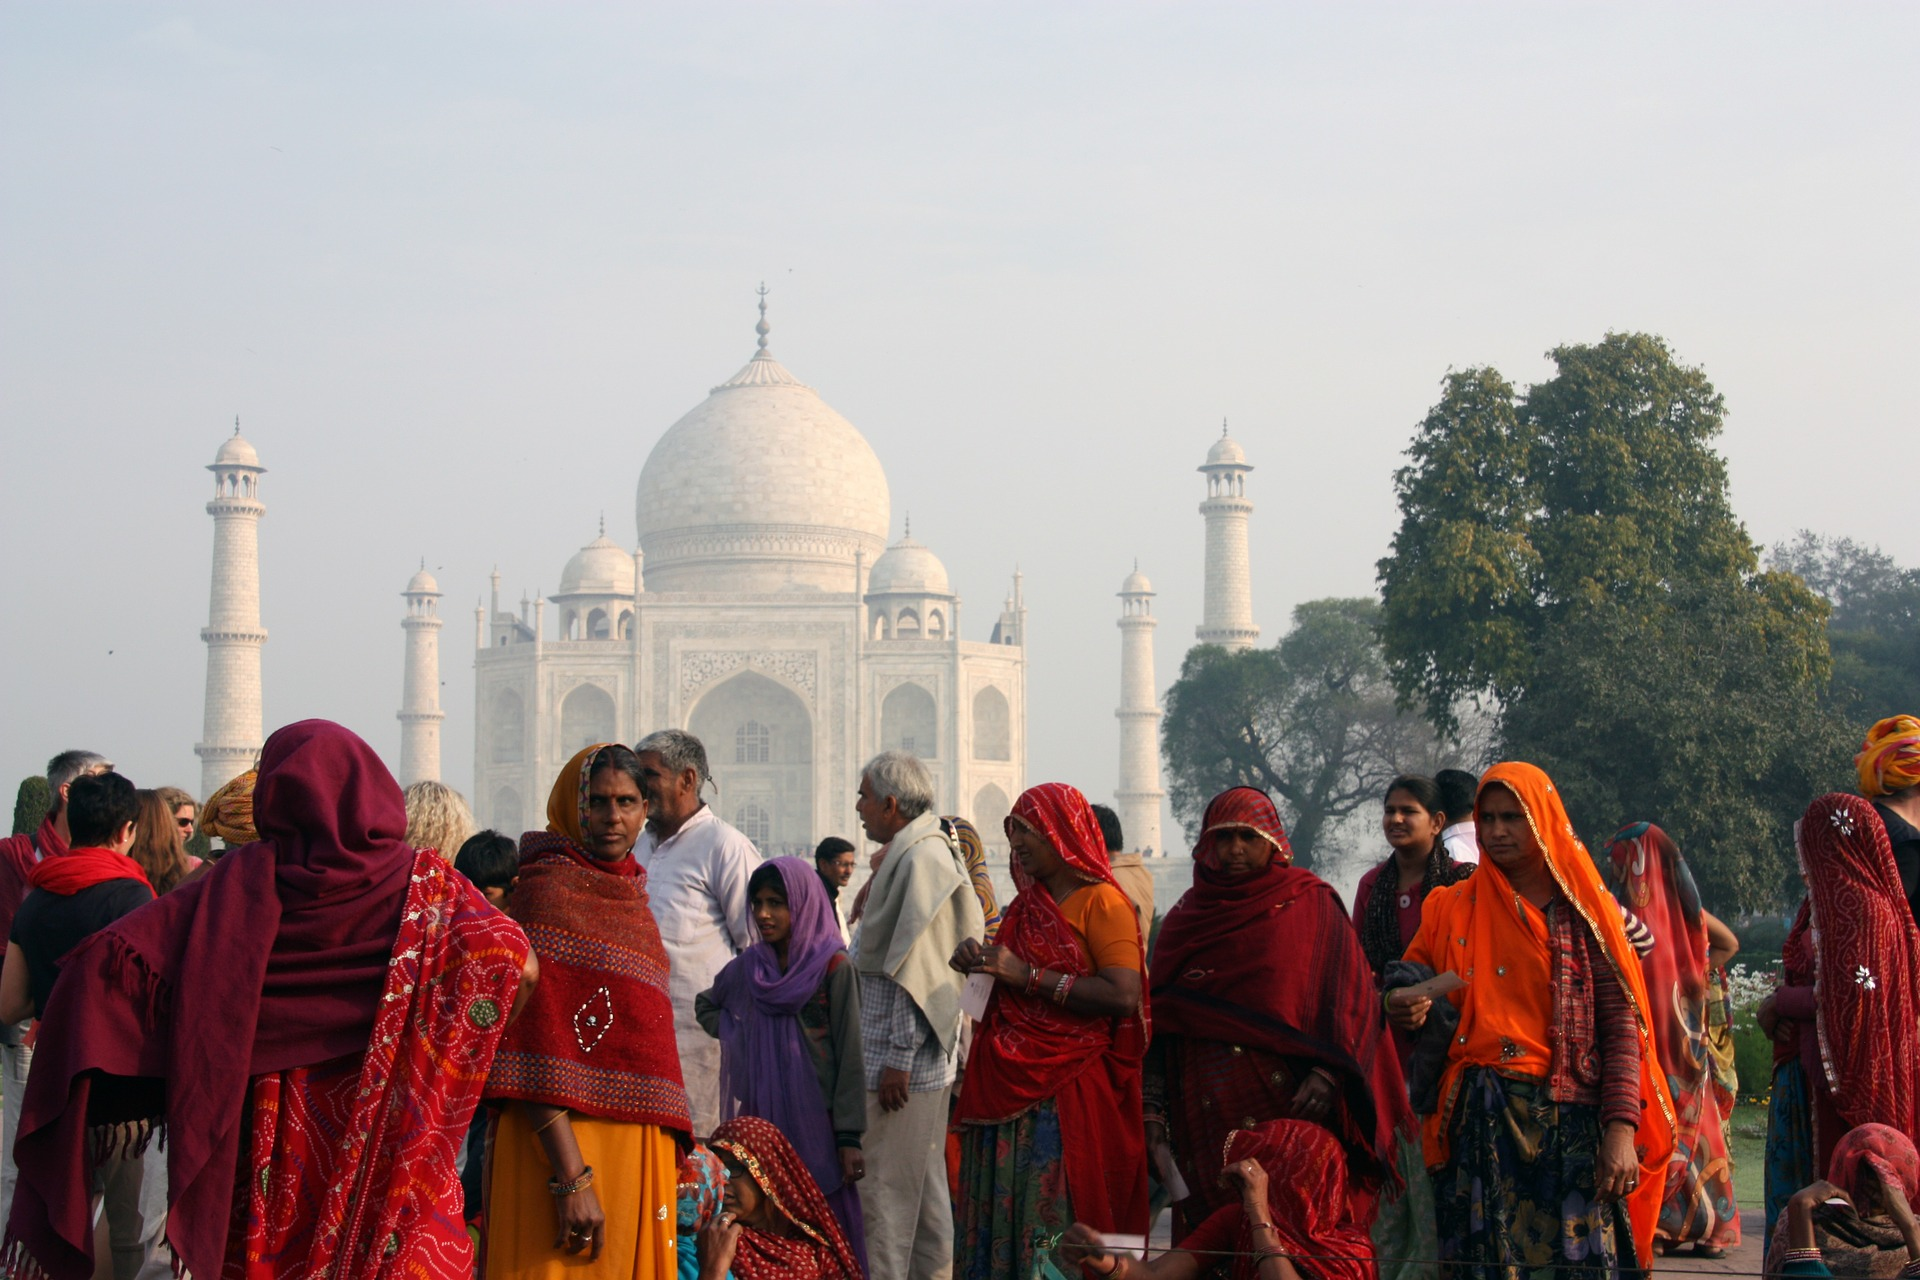 People gathered in front of the Taj Mahal in India